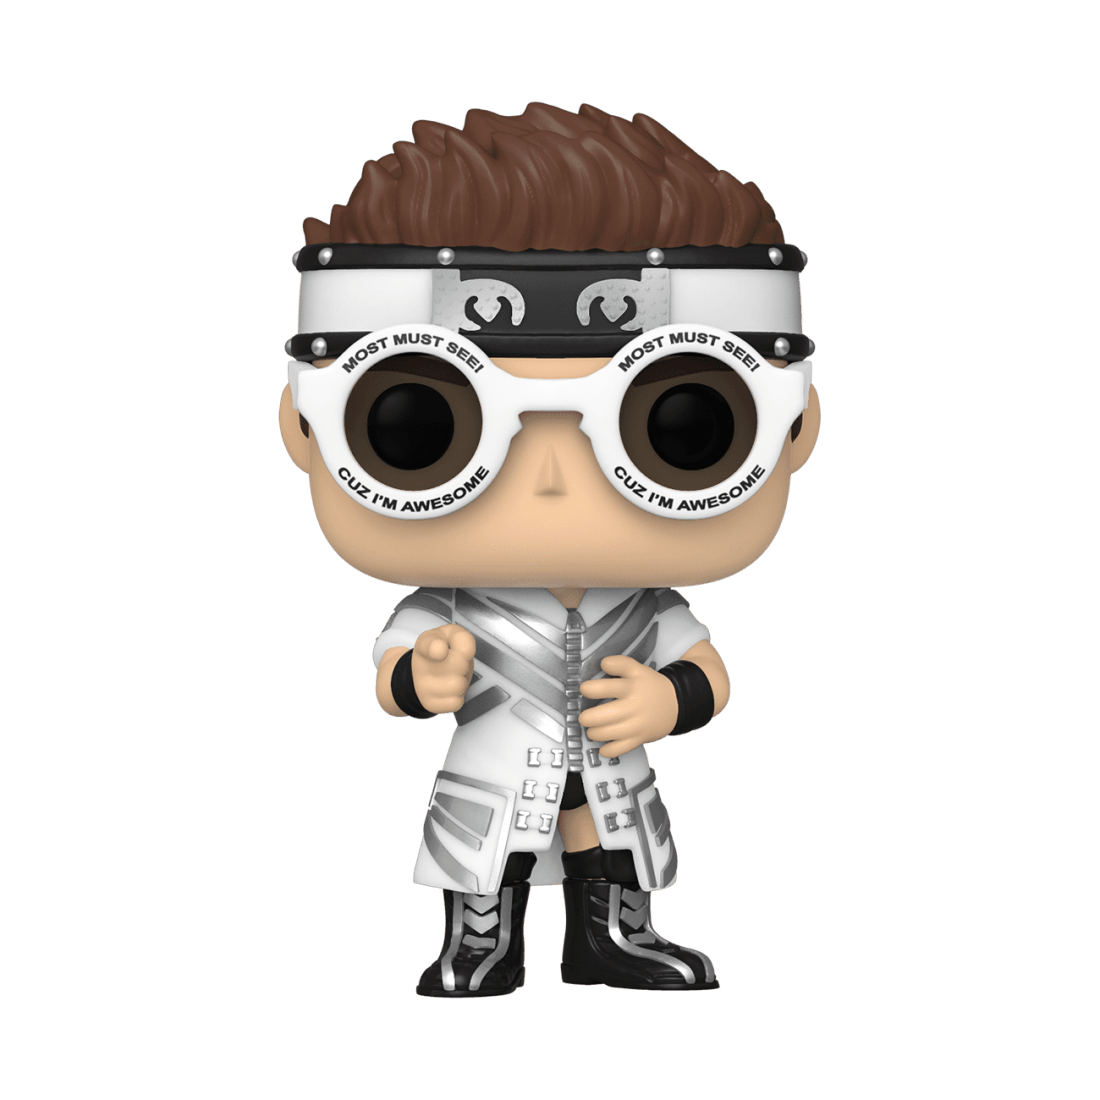 46843_WWE_TheMiz_POP_GLAM-WEB-de7984817aec8d1f0fb294bf23edd96d.png